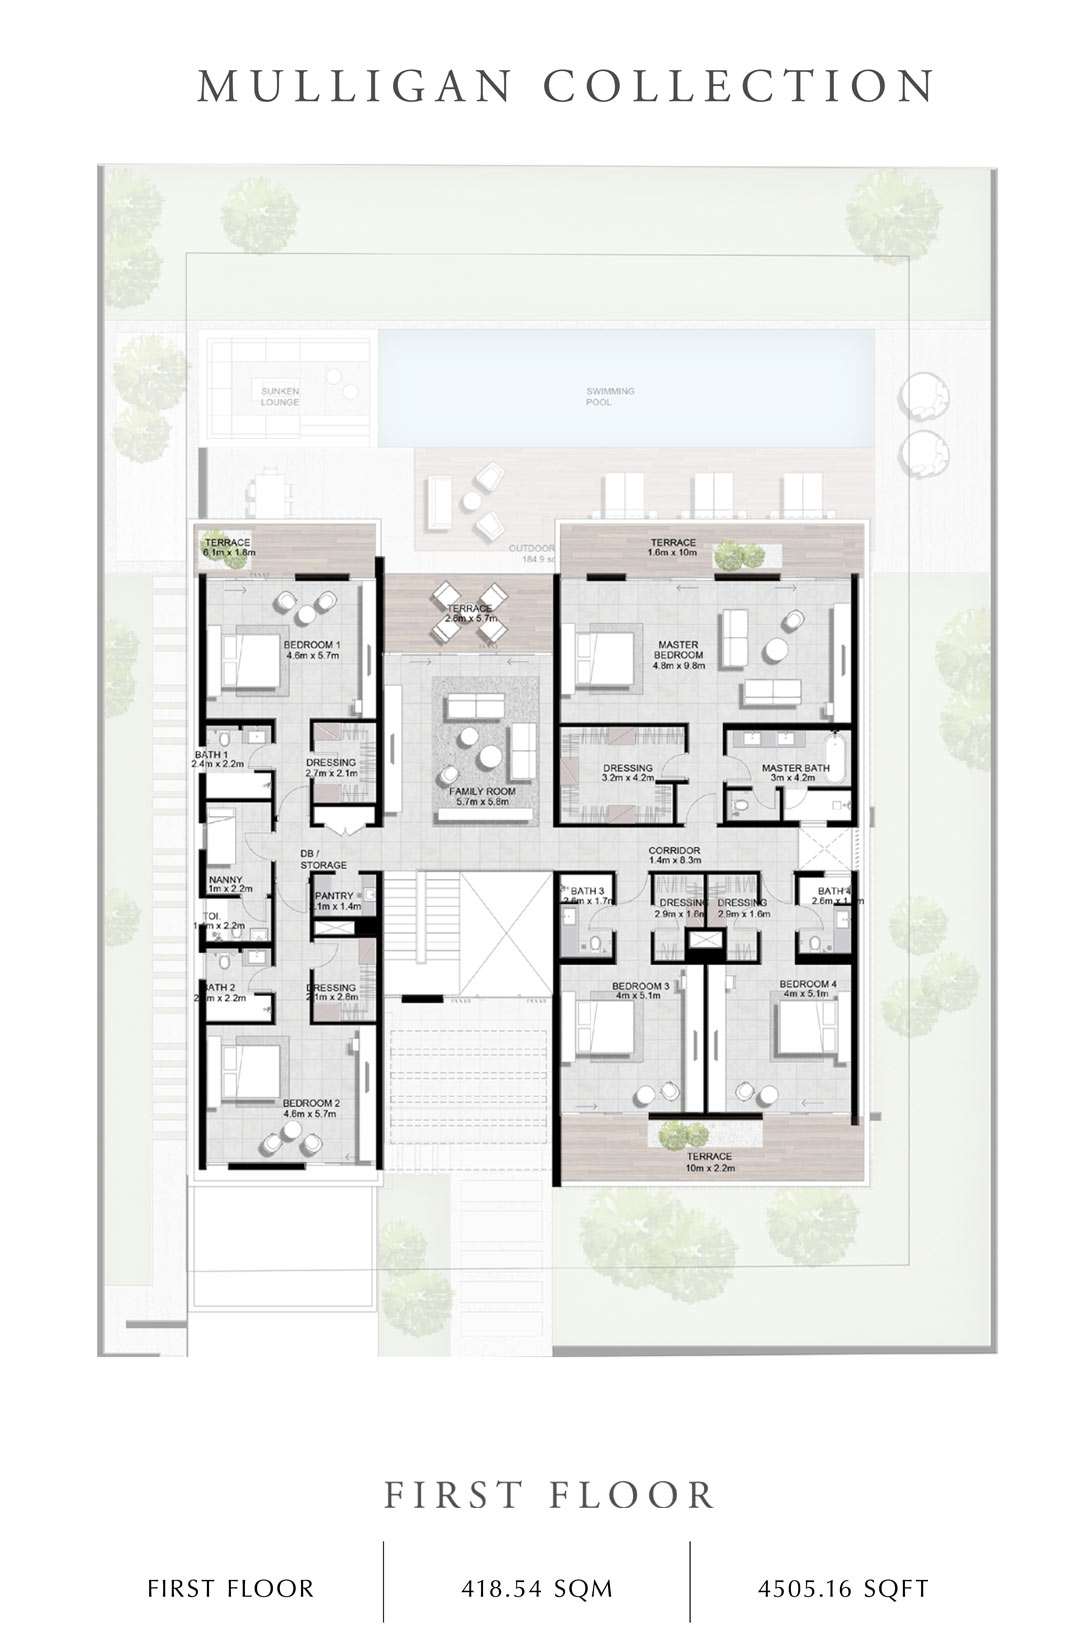 Mulligan-Collection-First Floor, Size 4505 Sq Ft